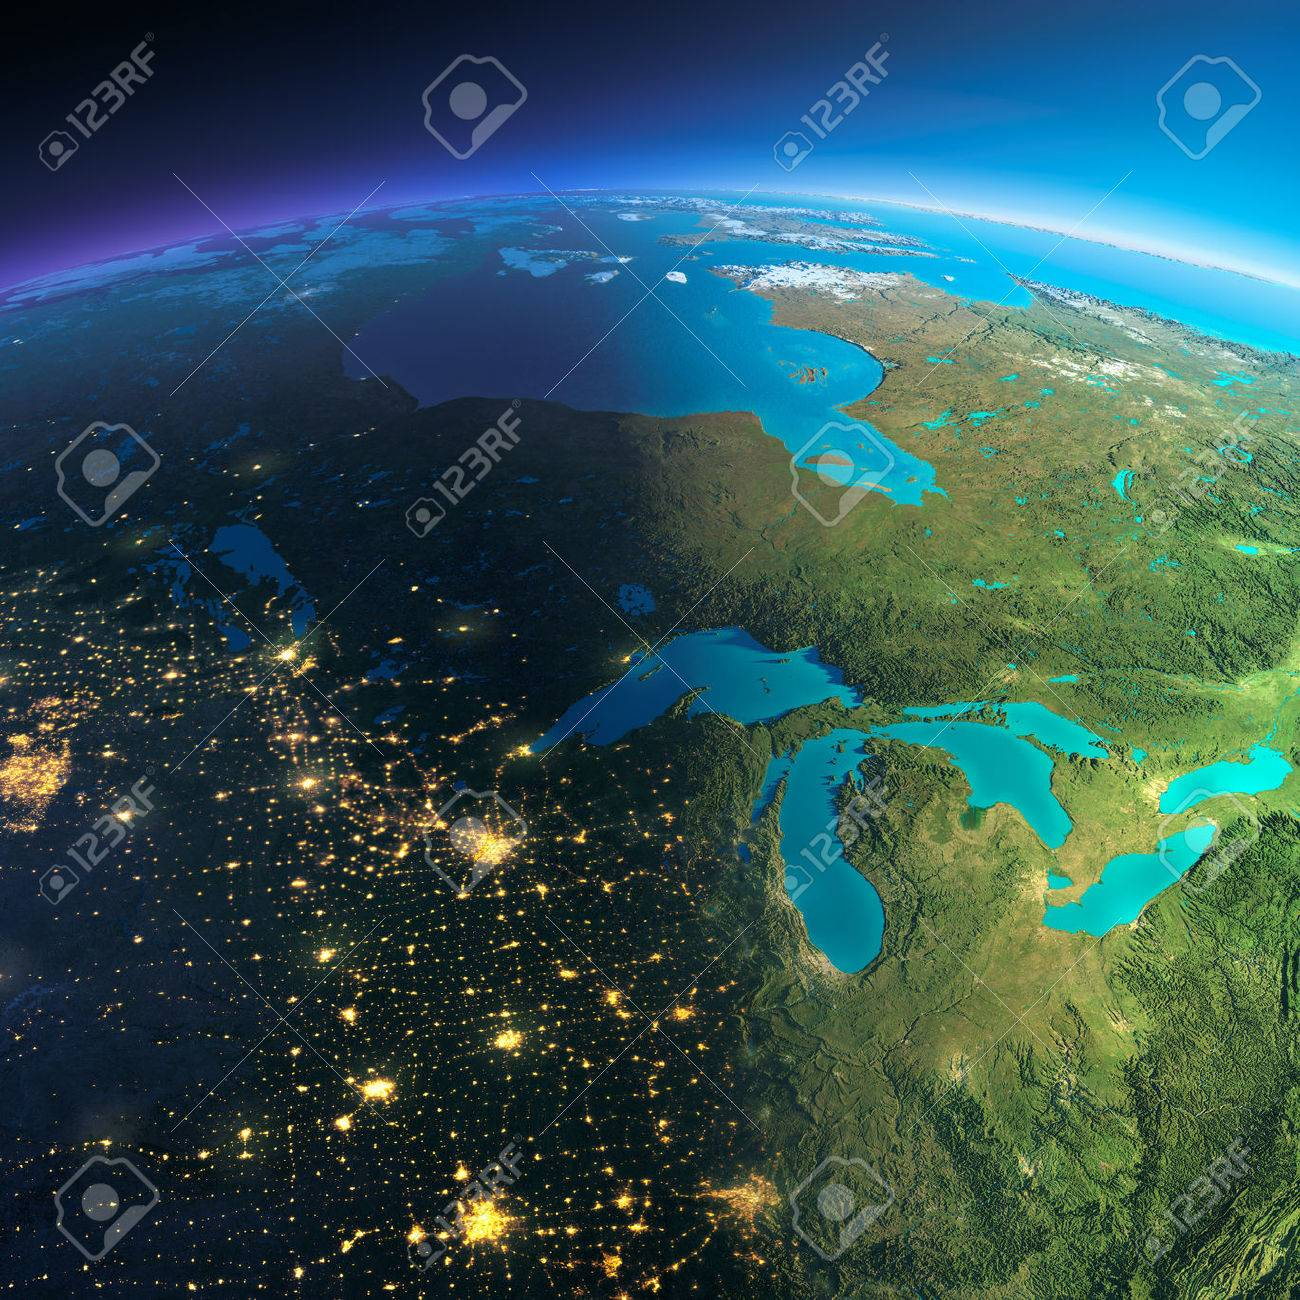 Highly detailed planet Earth. Night with glowing city lights gives way to day. The boundary of the night & day. The northern U.S. states and Canada. Elements of this image furnished by NASA - 39100891